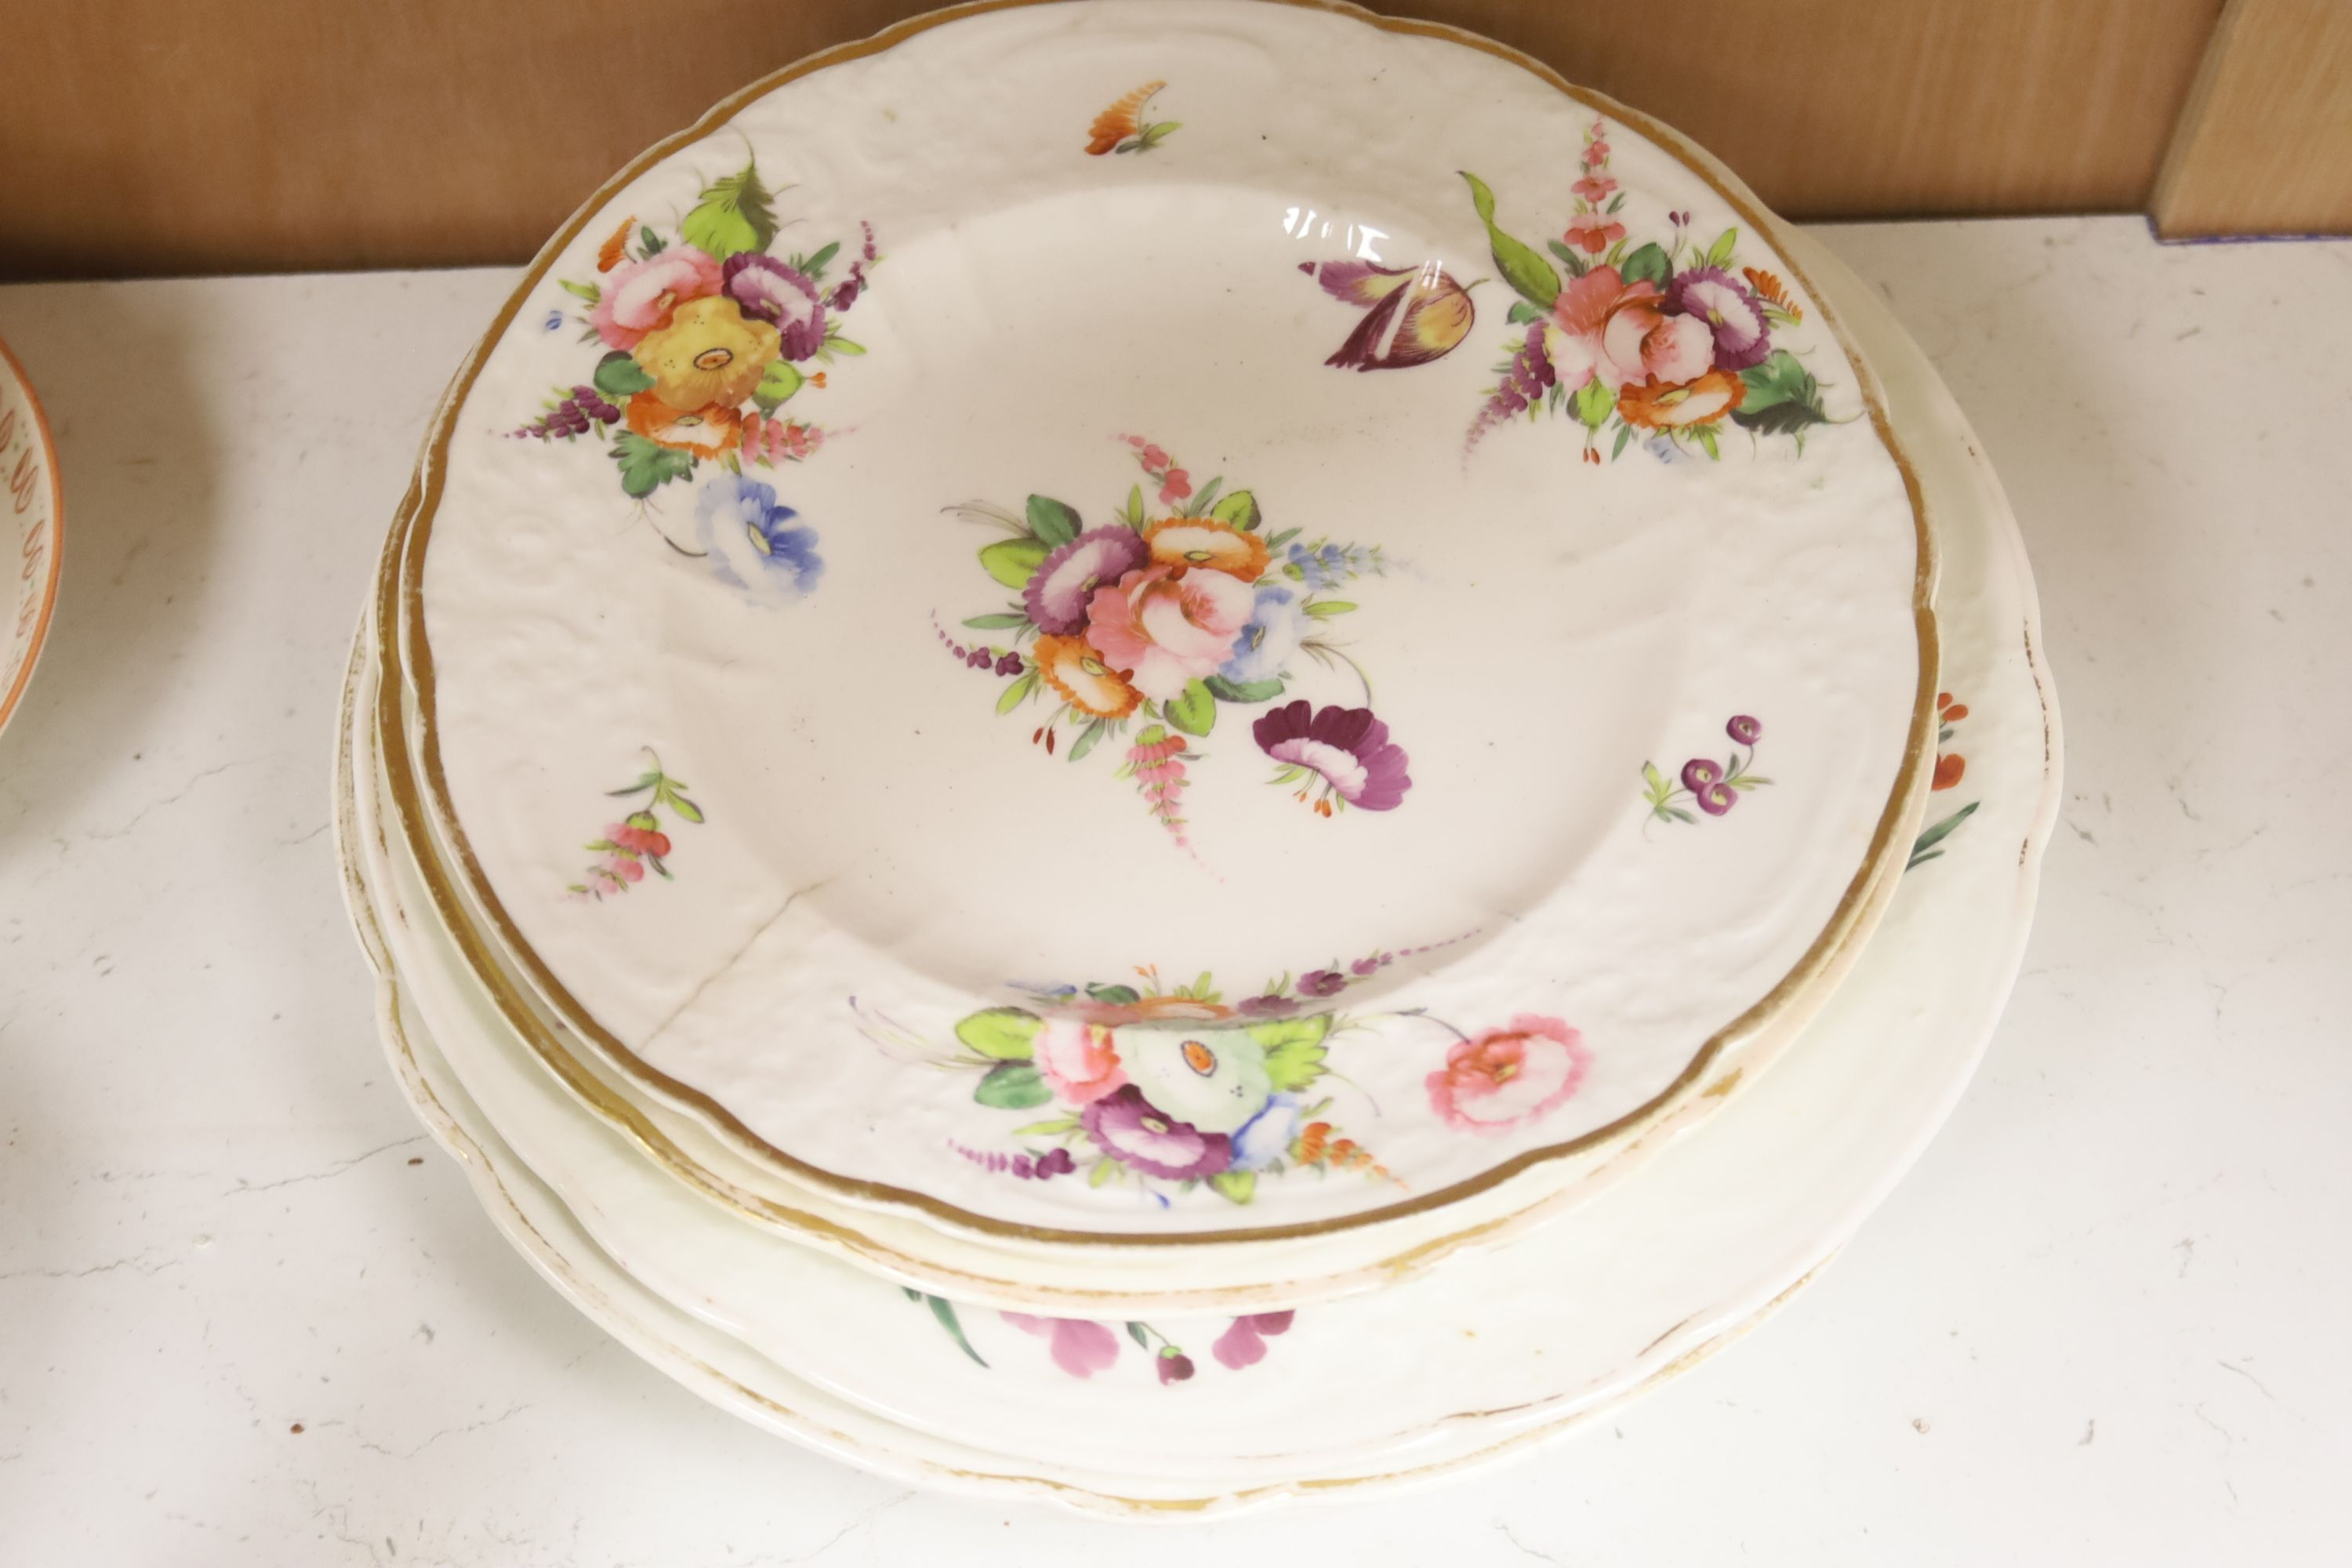 A group of late 18th / early 19th century English porcelain teaware and plates,together with a - Image 3 of 6